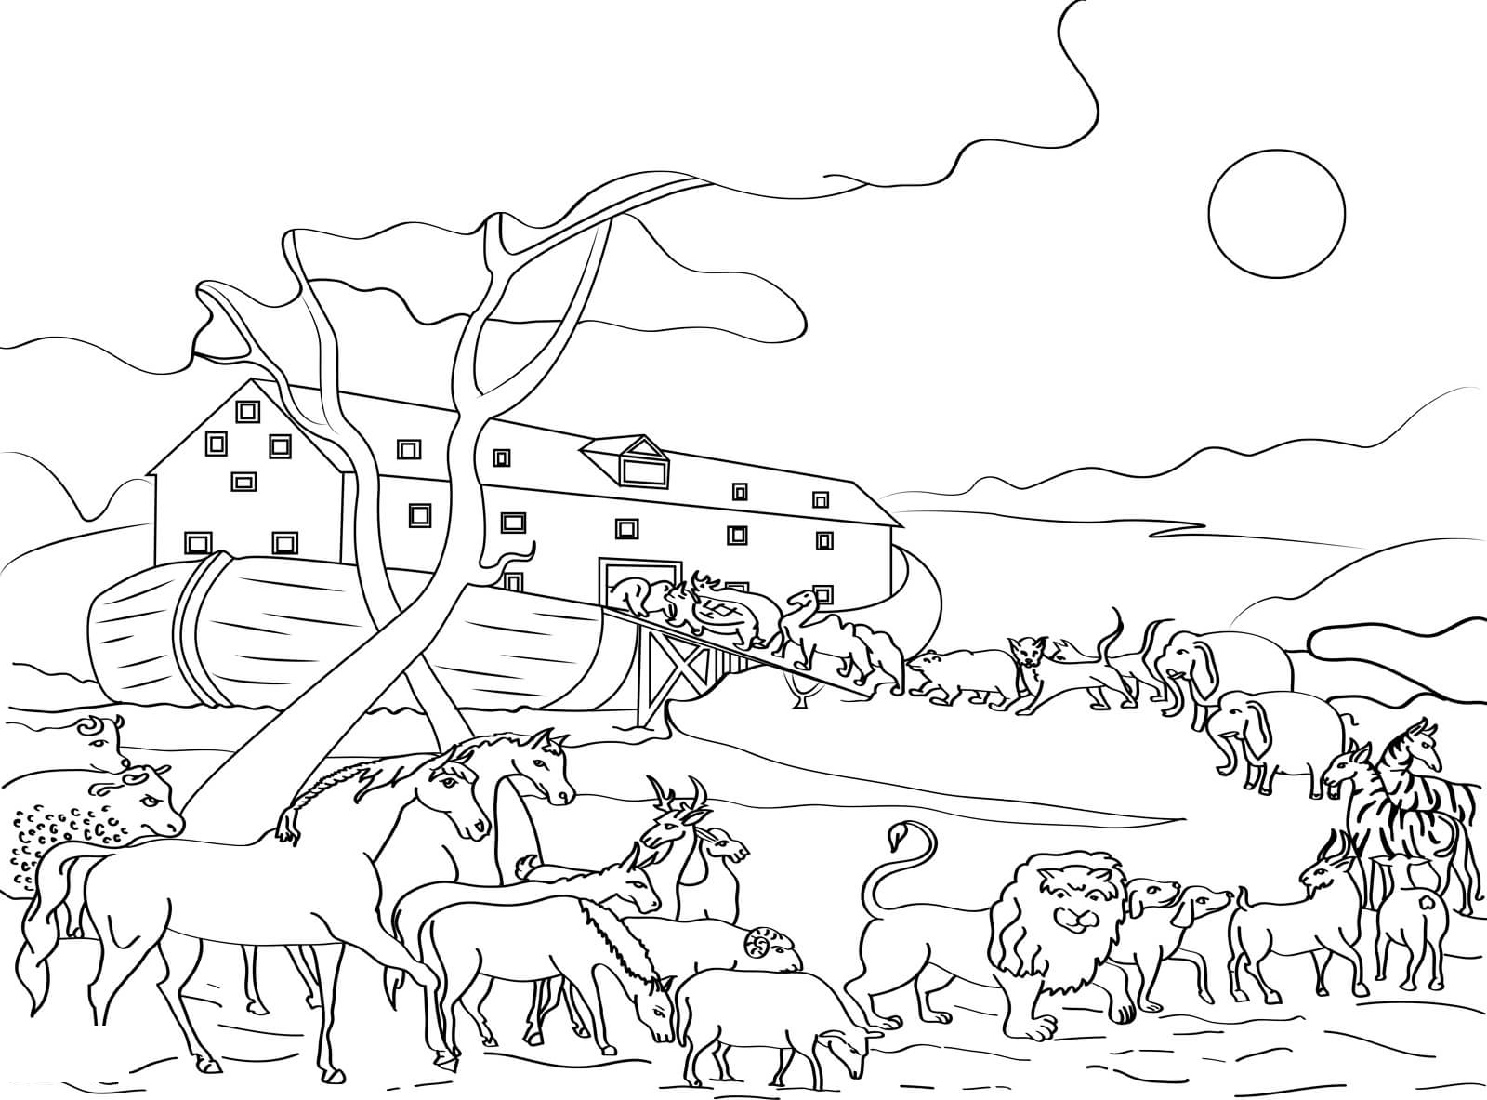 Noah's Ark Coloring Page Animals Loading